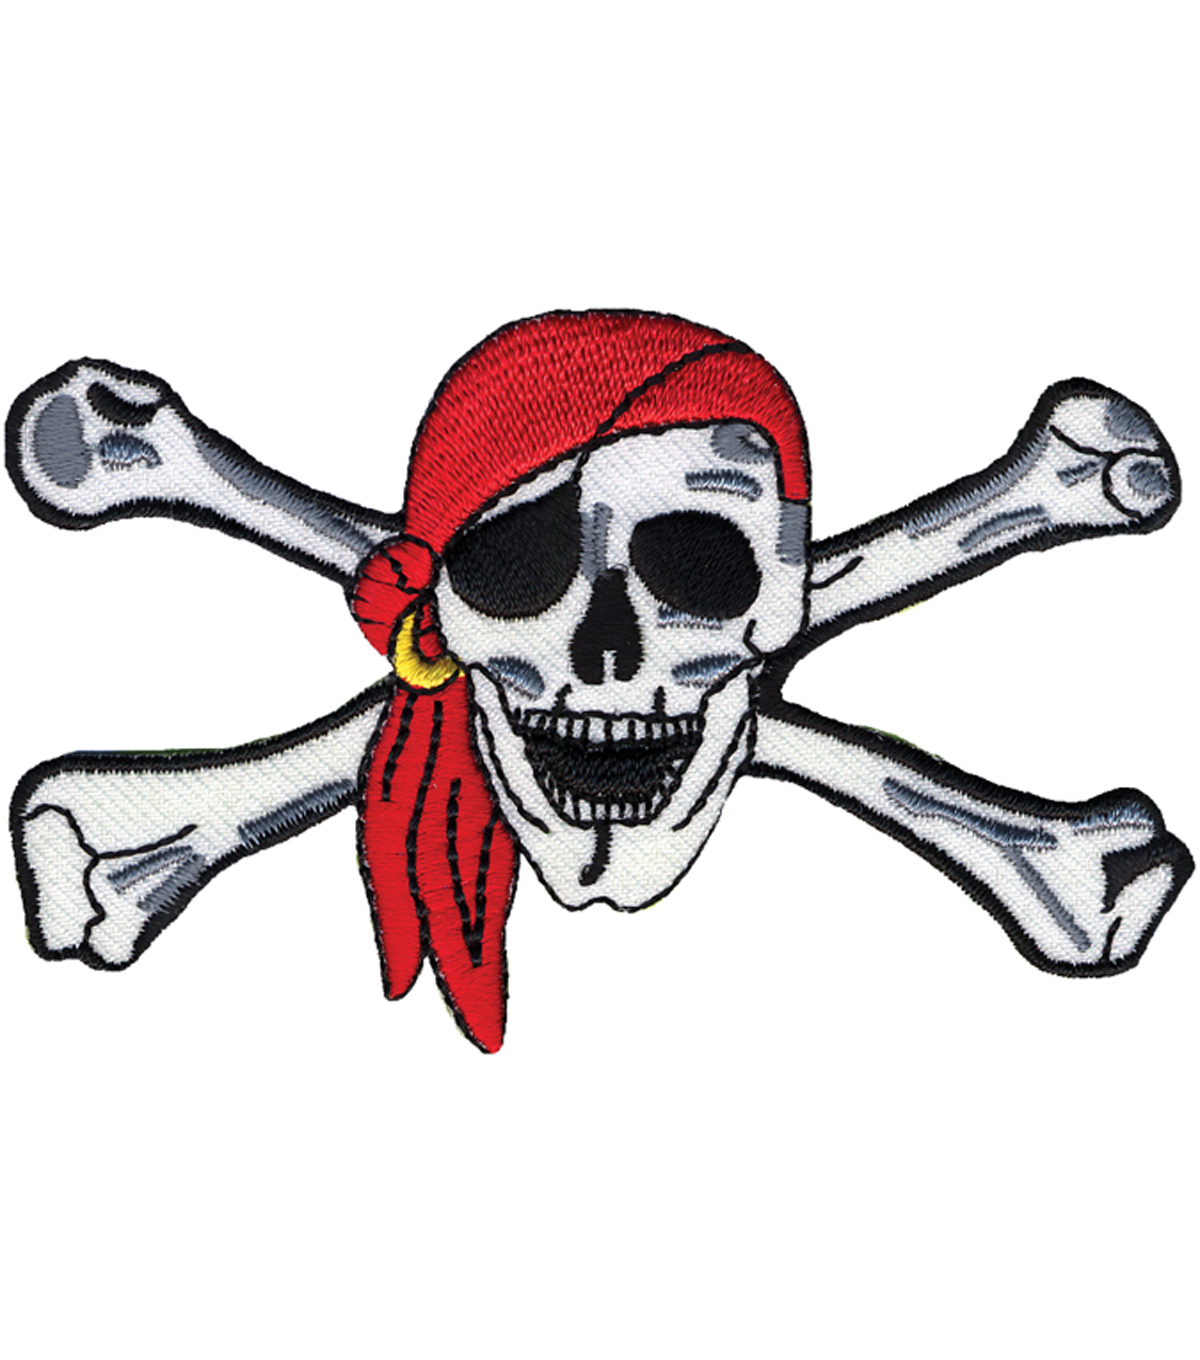 Wrights® Iron-On Appliques-Pirate Skull&Crossbones 1-3/4\u0022x1-1/2\u0022